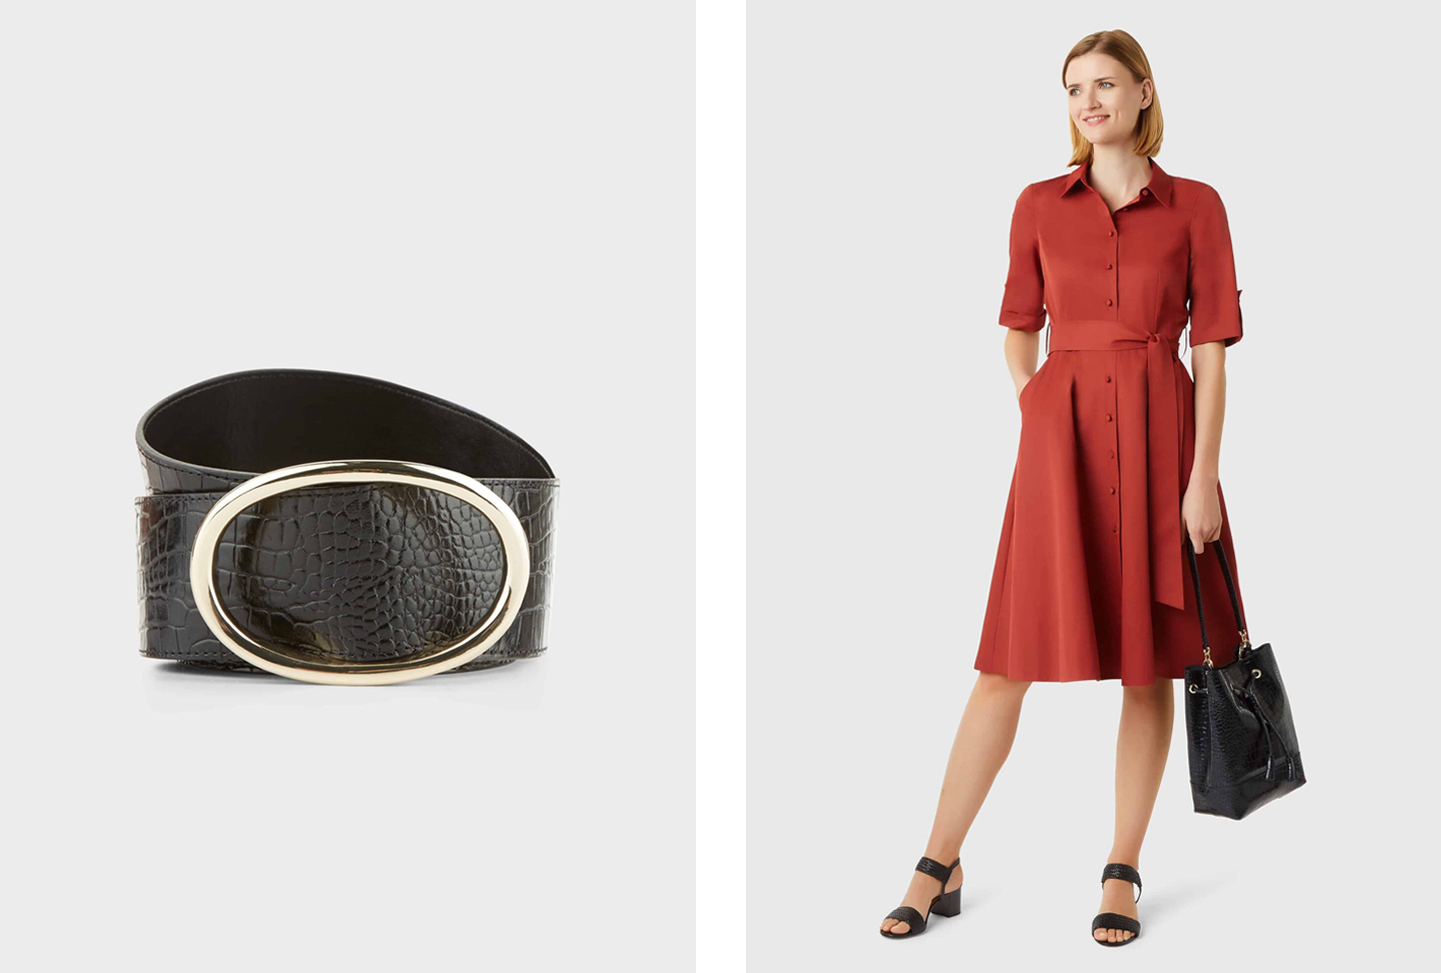 The right shows a mid-sleeved shirt dress in red with a waist-tie detail worn with heeled sandals in black and leather tote bag in black. Add a smart belt such as the one shown on the left which is a black leather belt with an embossed snake print and gold buckle to add some definition. All from Hobbs.